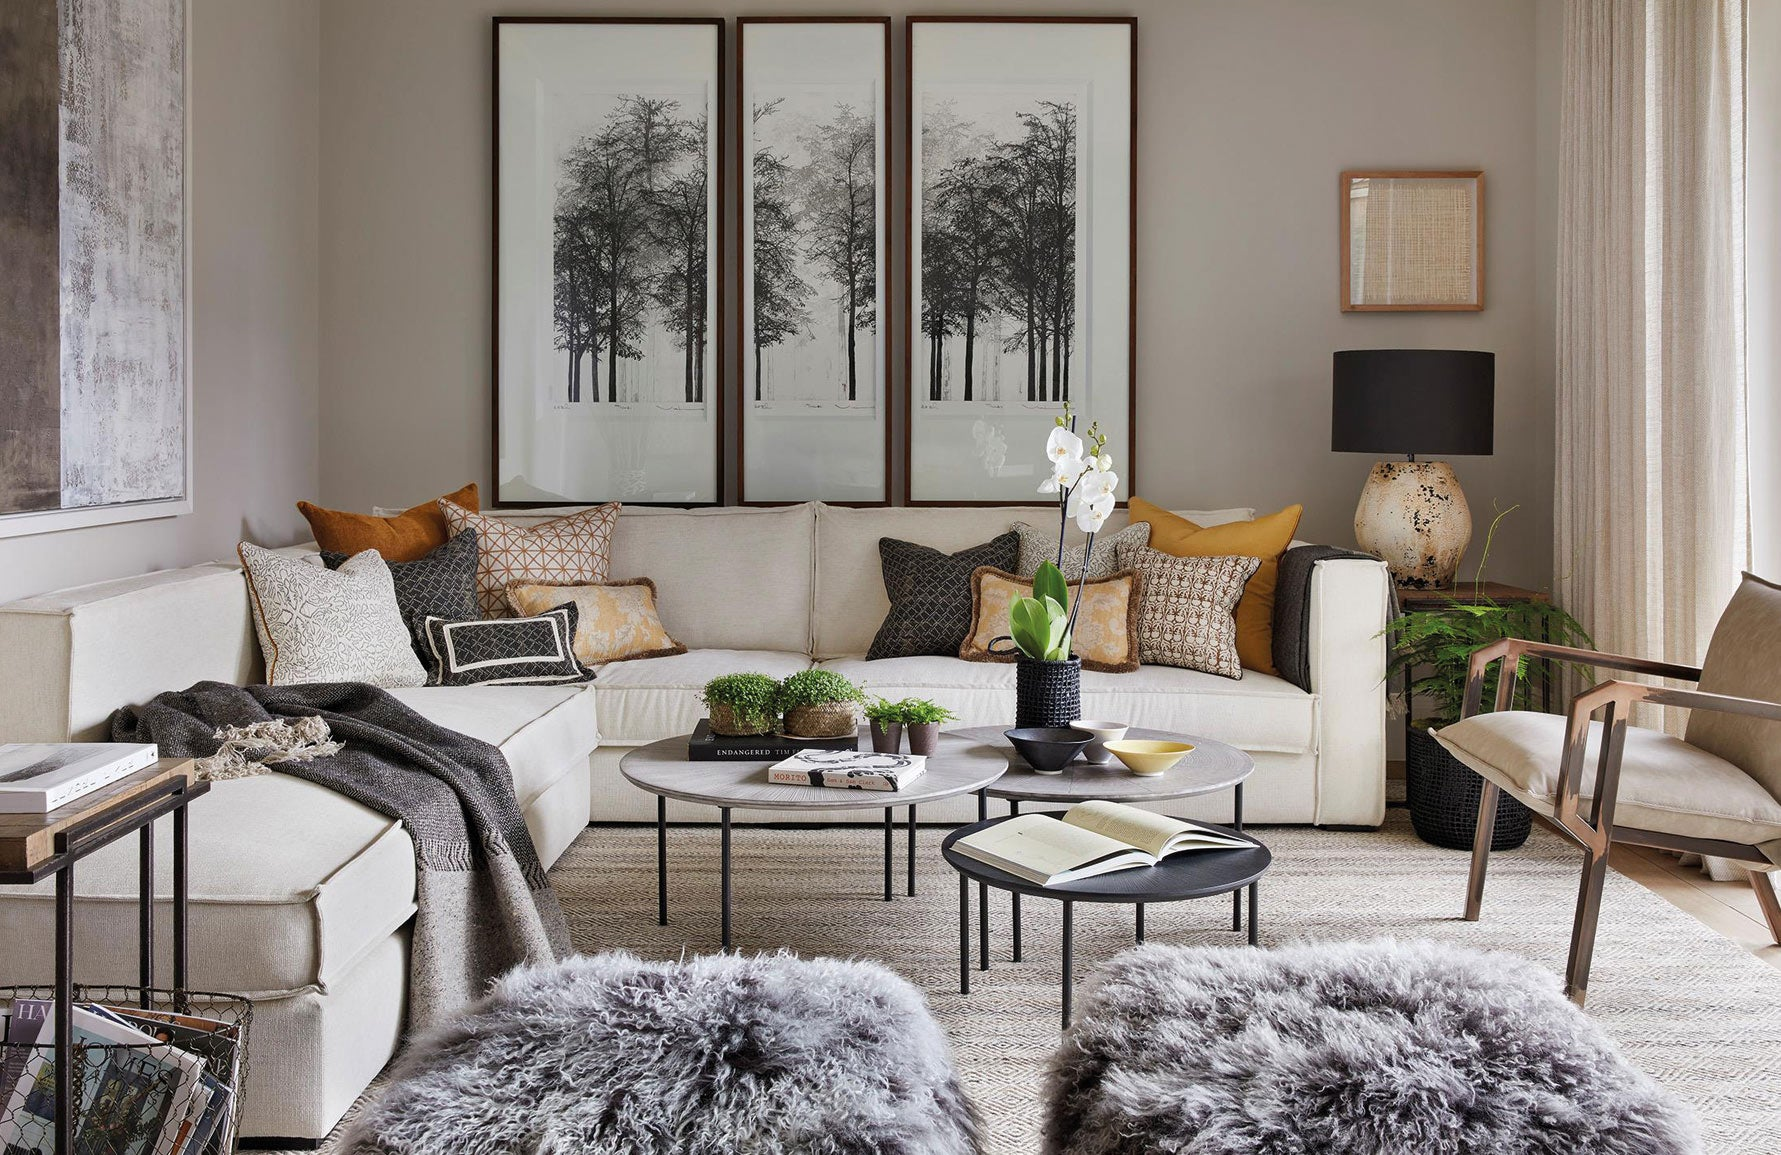 Shop Luxury Rugs Online at LuxDeco.com | Interior Design by Louise Bradley | Elegant Beige Living Room